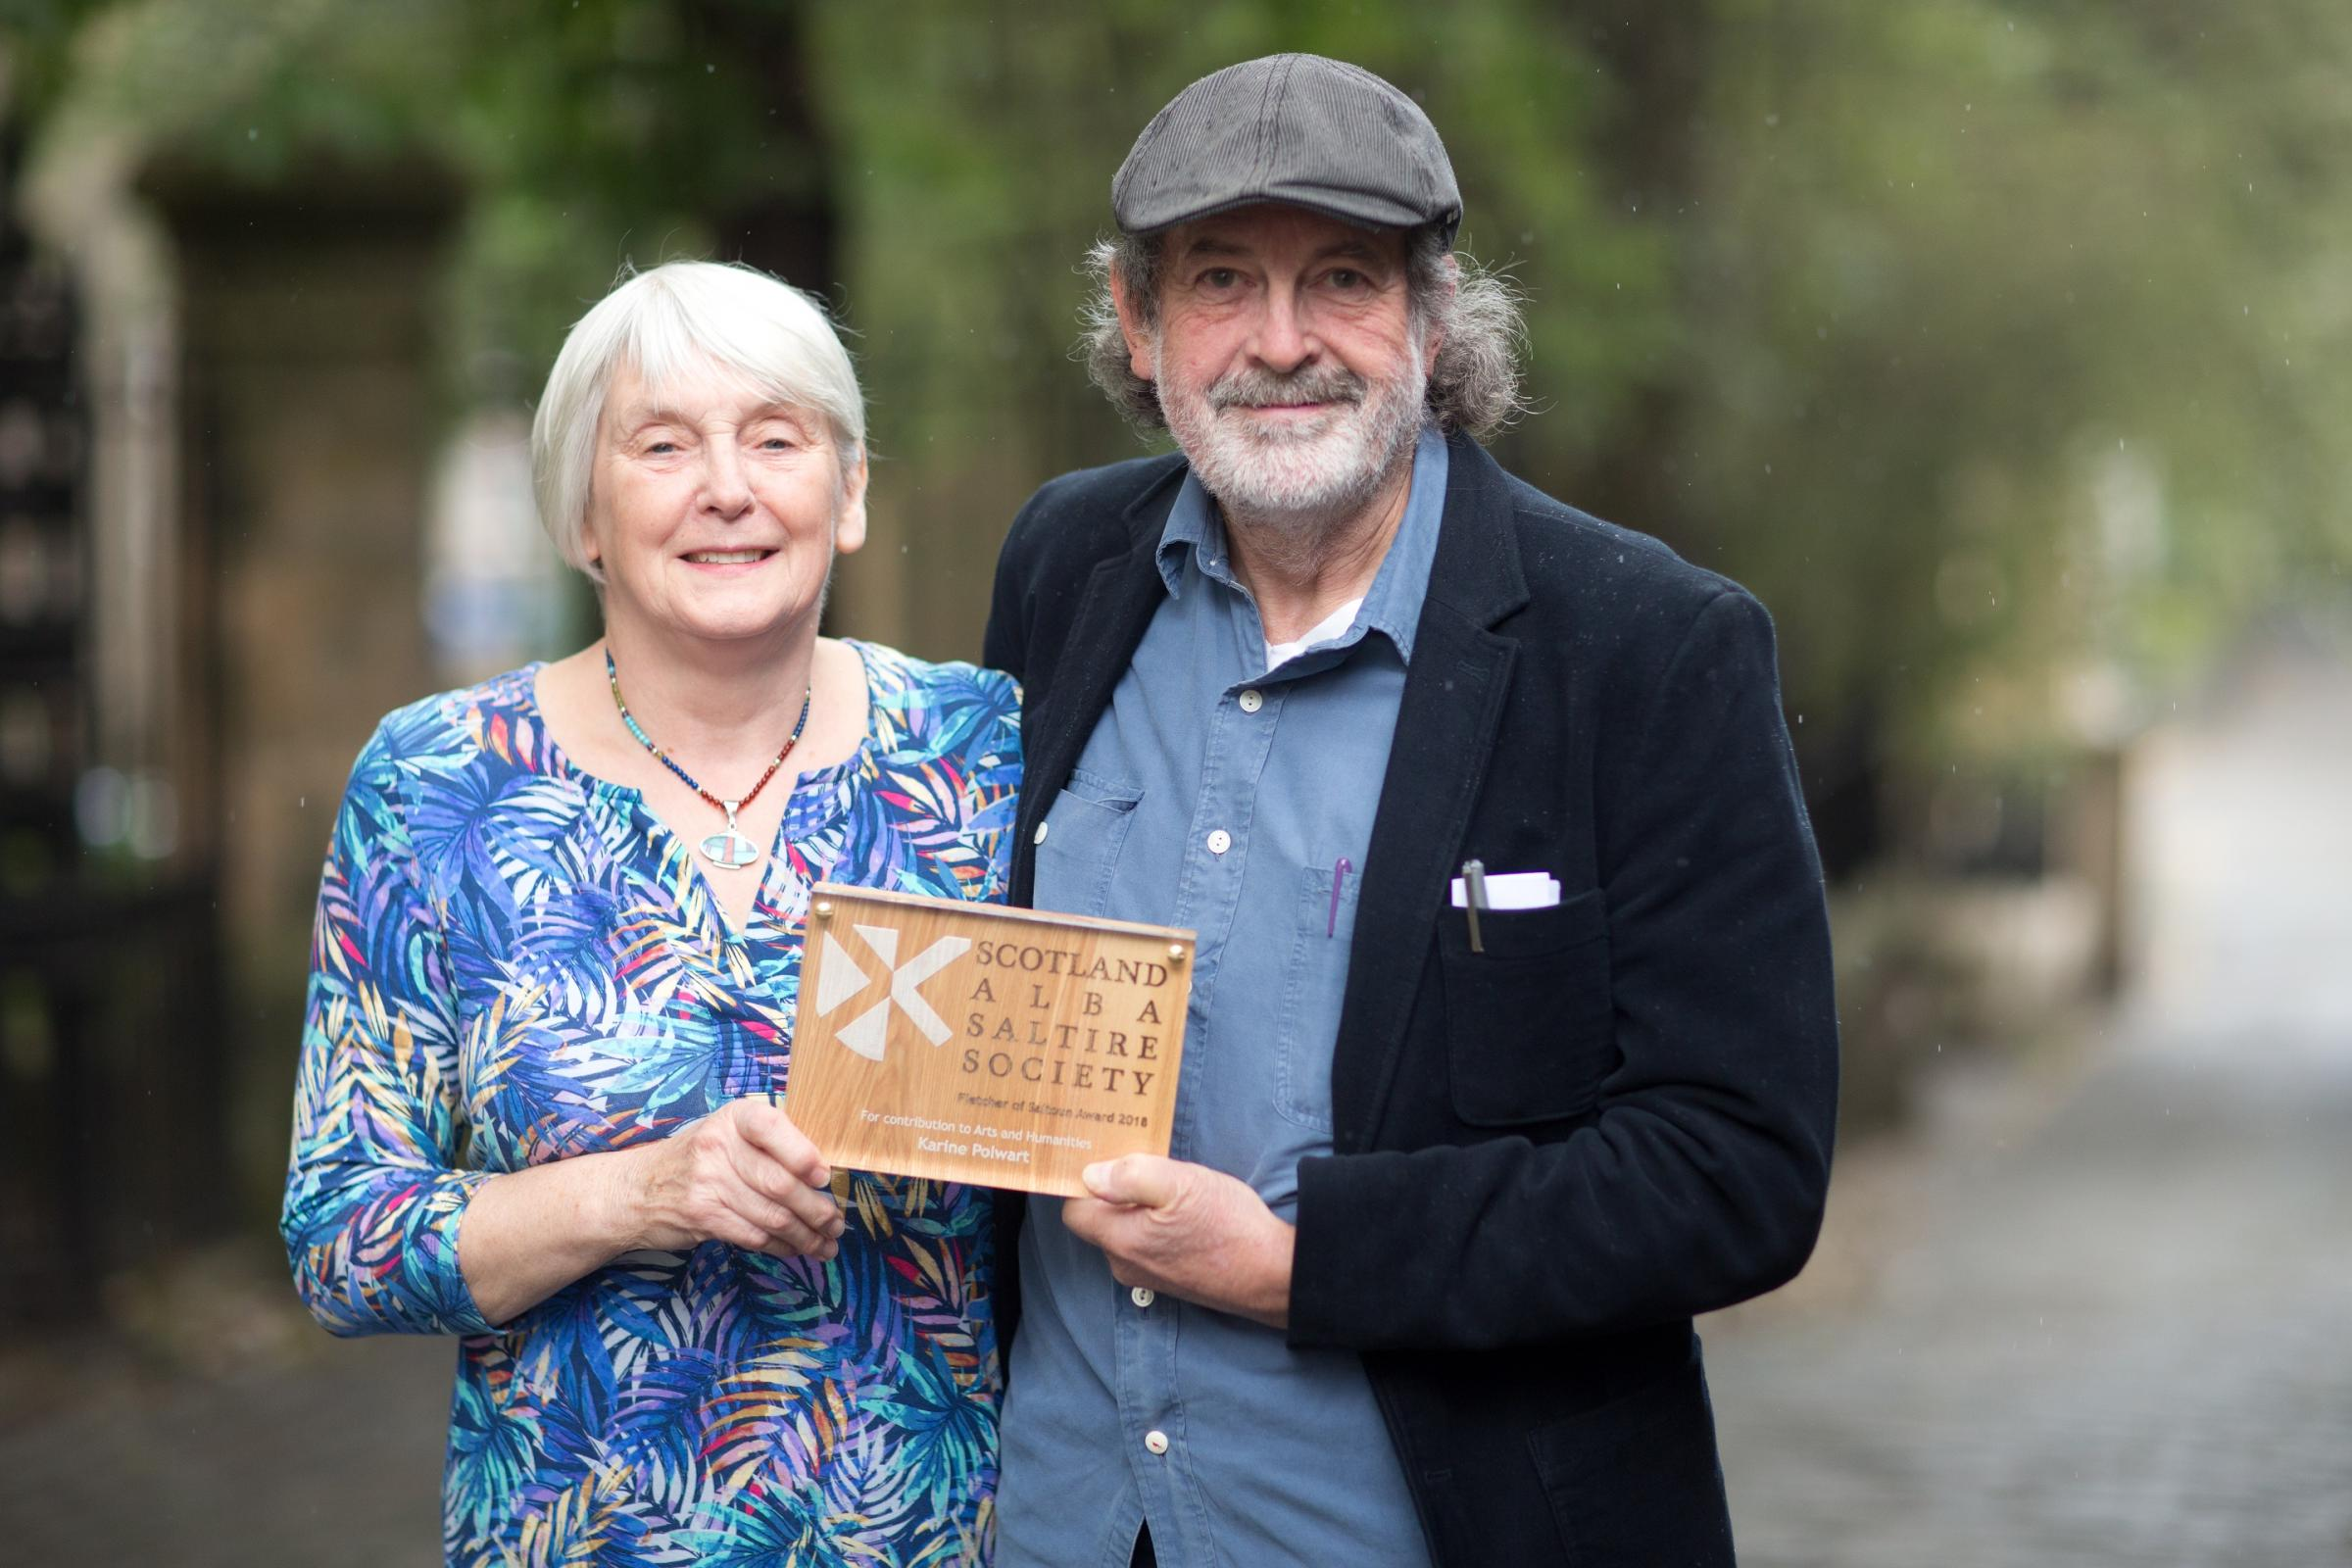 Karine Polwart's parents who accepted the award on her behalf